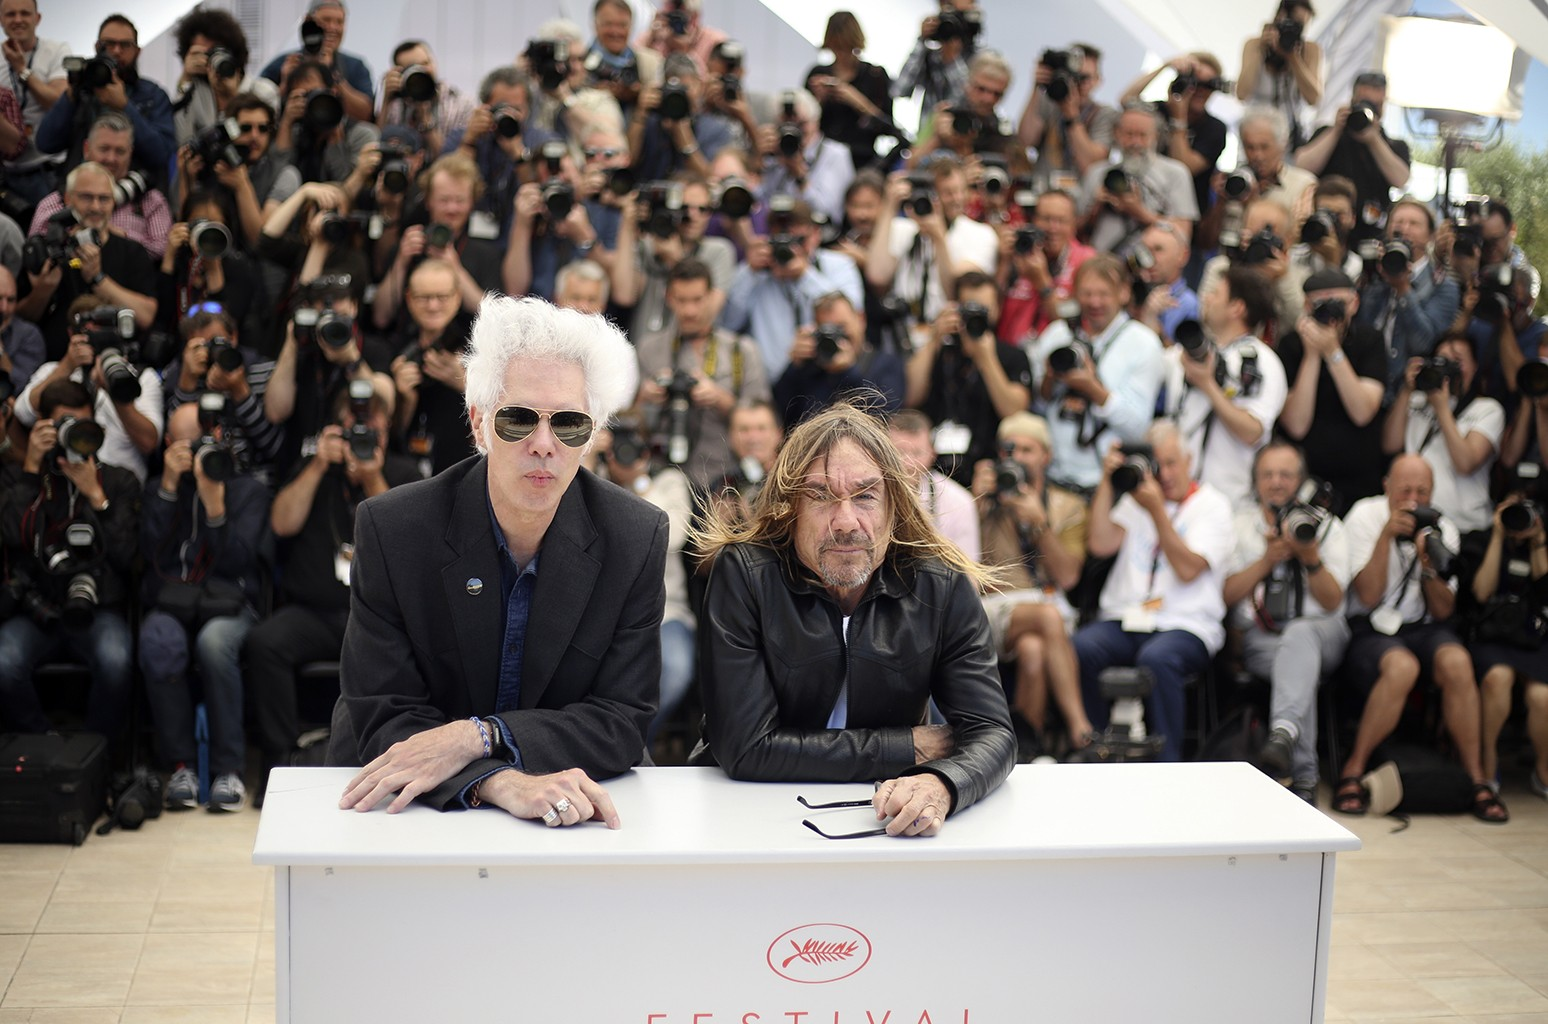 Jim Jarmusch and Iggy Pop at Cannes